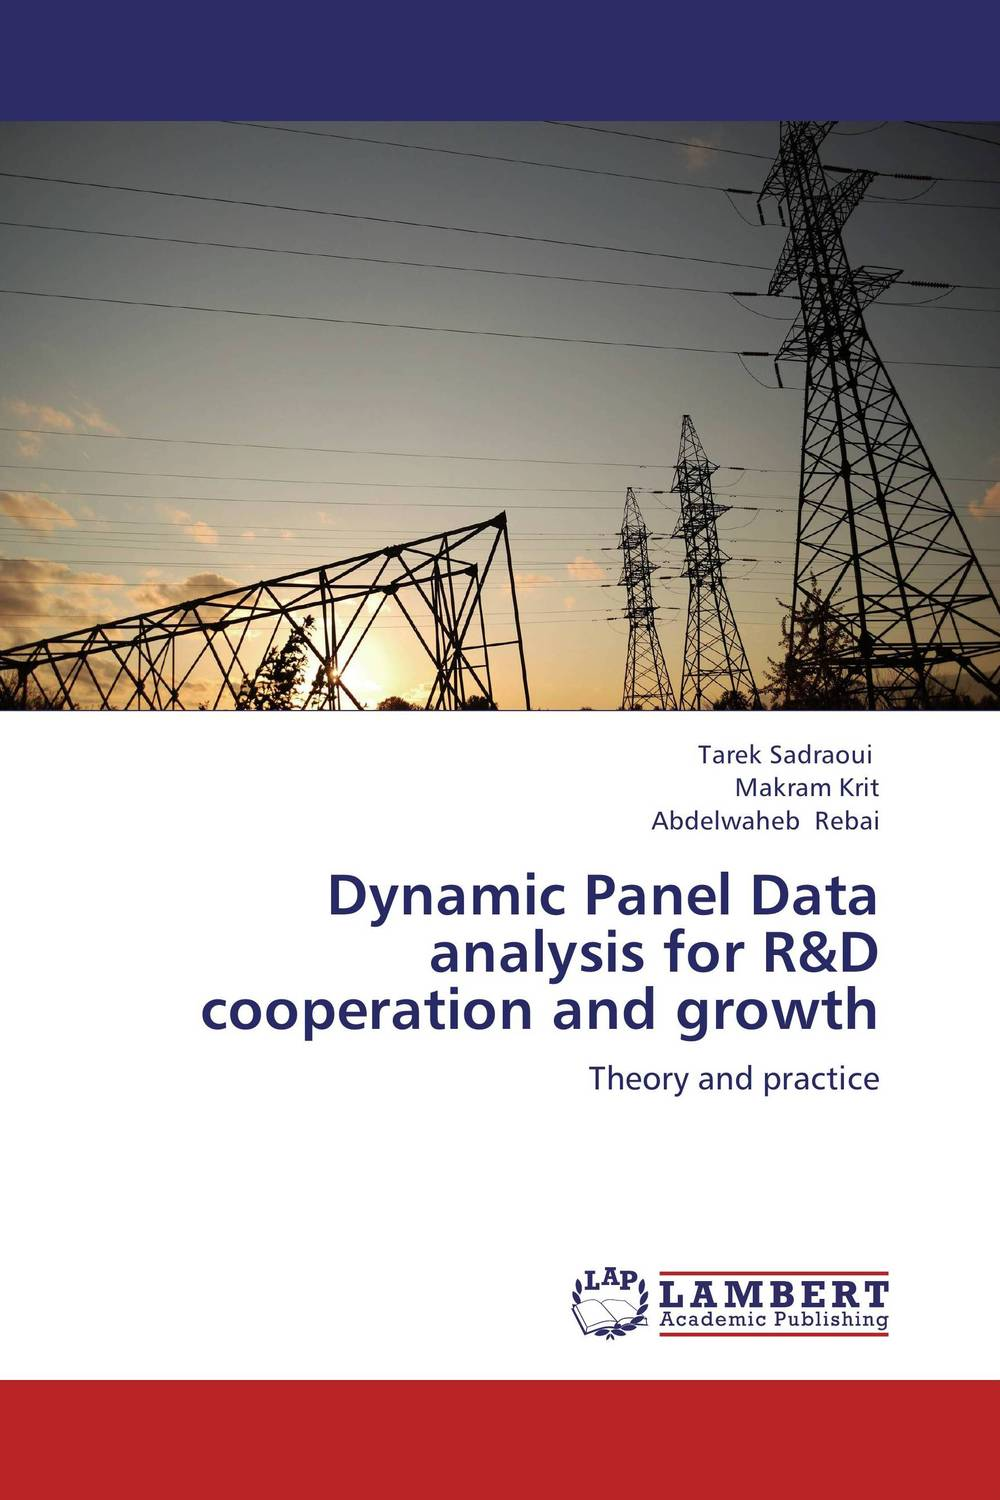 Dynamic Panel Data analysis for R&D cooperation and growth t omay energy consumption and economic growth evidence from nonlinear panel cointegration and causality tests